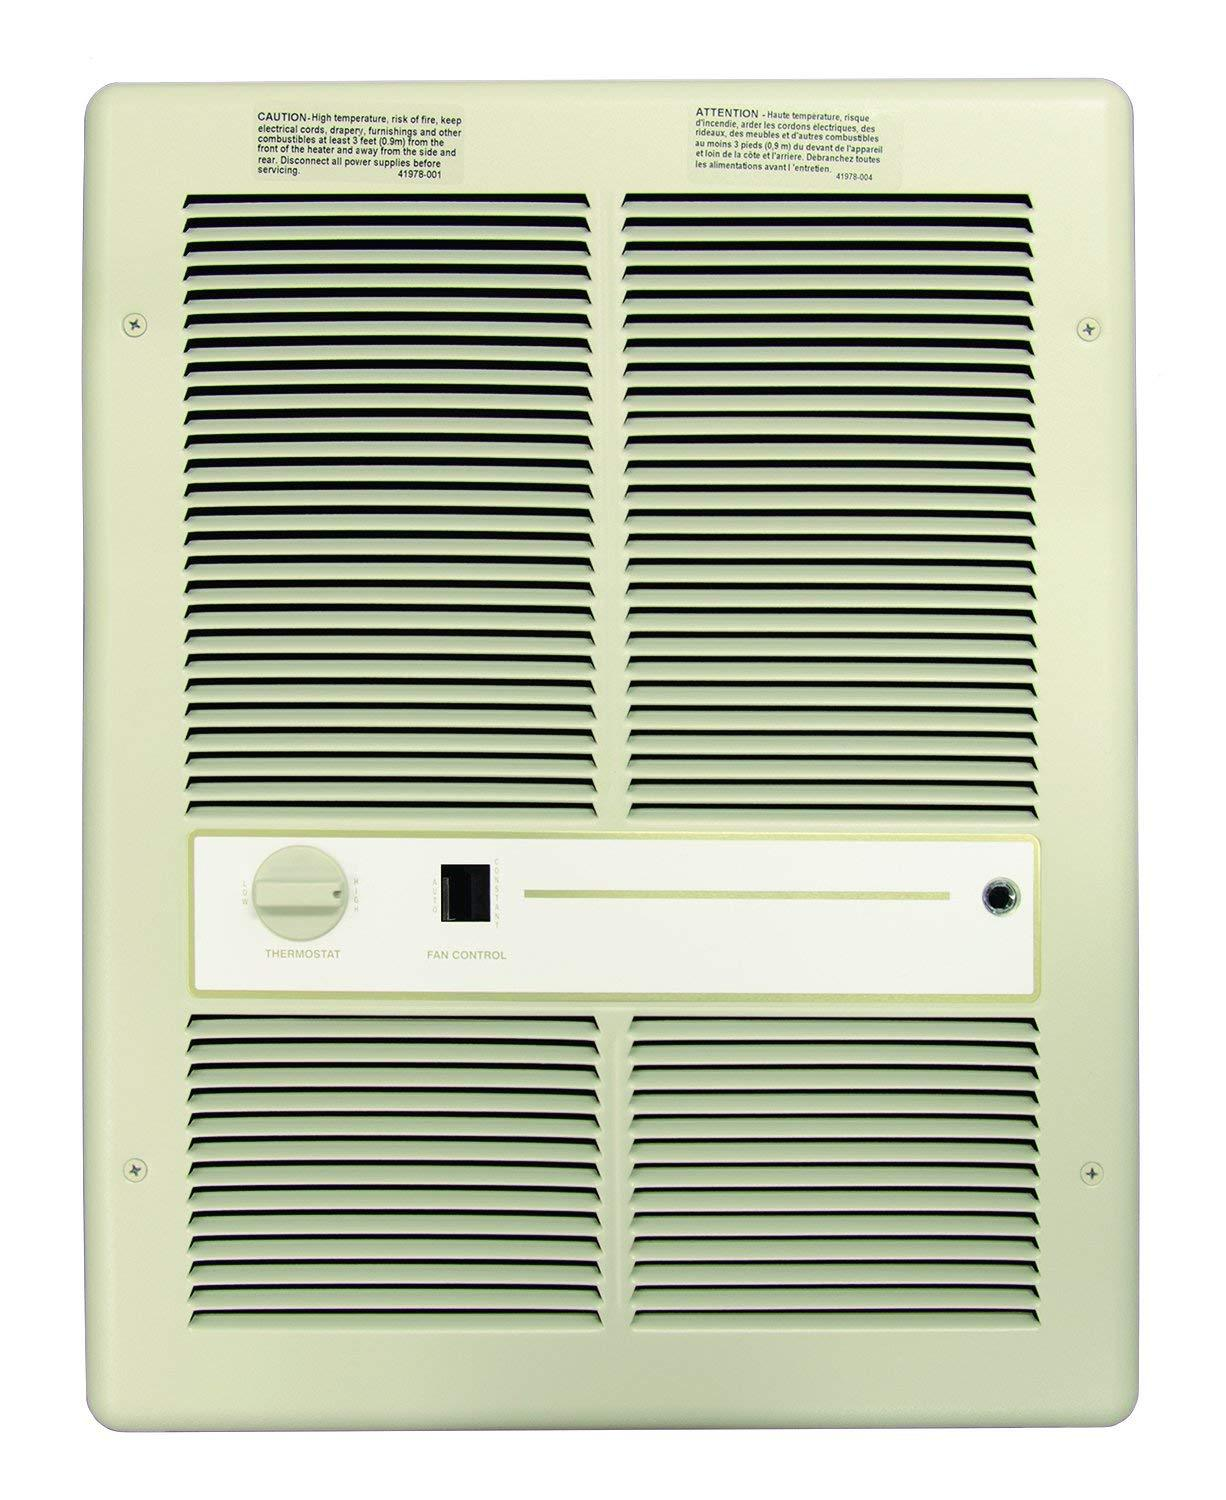 TPI- 4000W 208V Fan Forced Wall Heater With Summer Fan Switch- Double Pole Thermostat- Ivory - F3316T2SRP